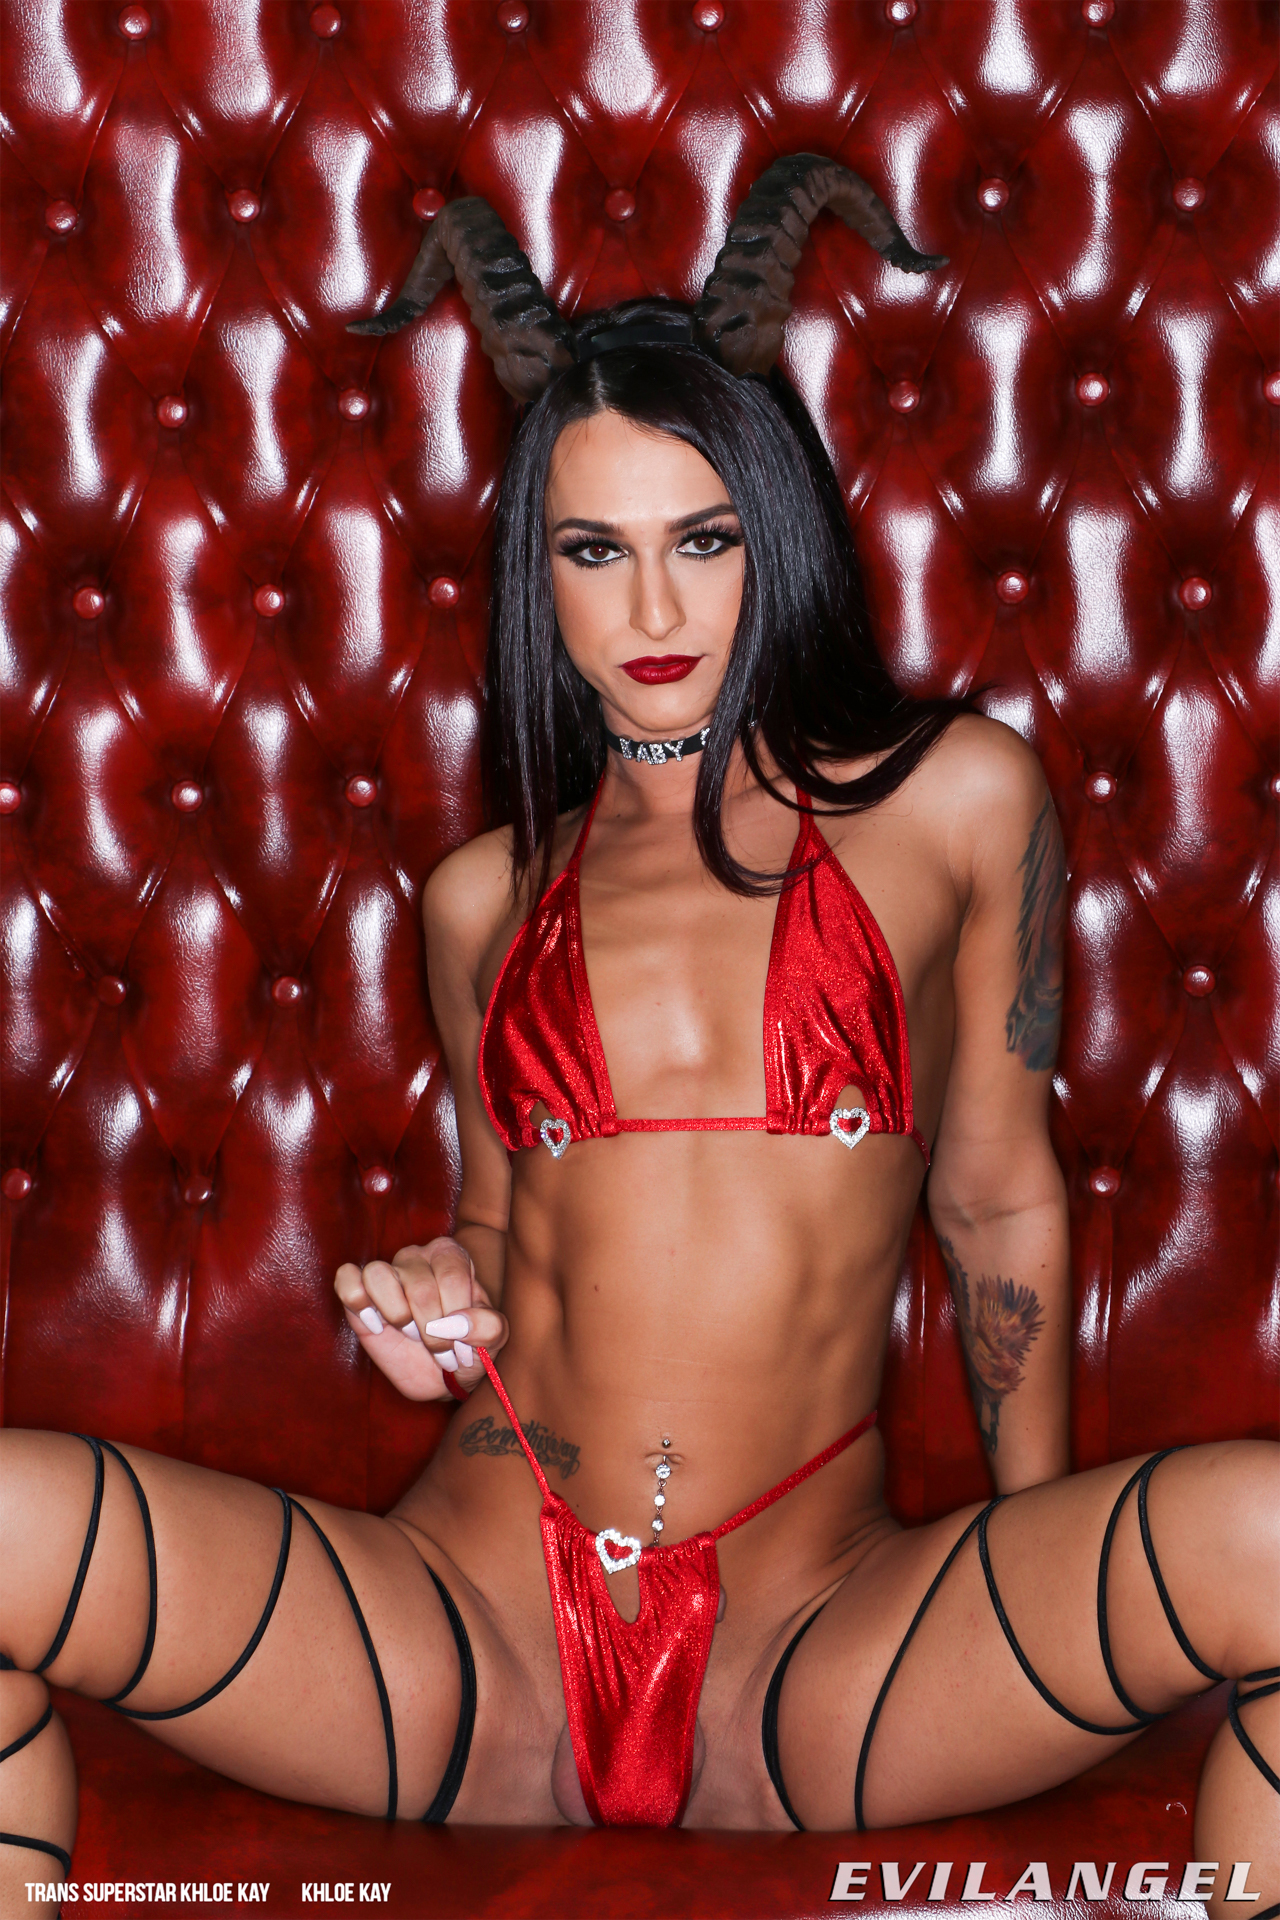 Hot Naughty TS Khloe Kay Spreads her Legs in a Skimpy Devil Outfit (1/15)